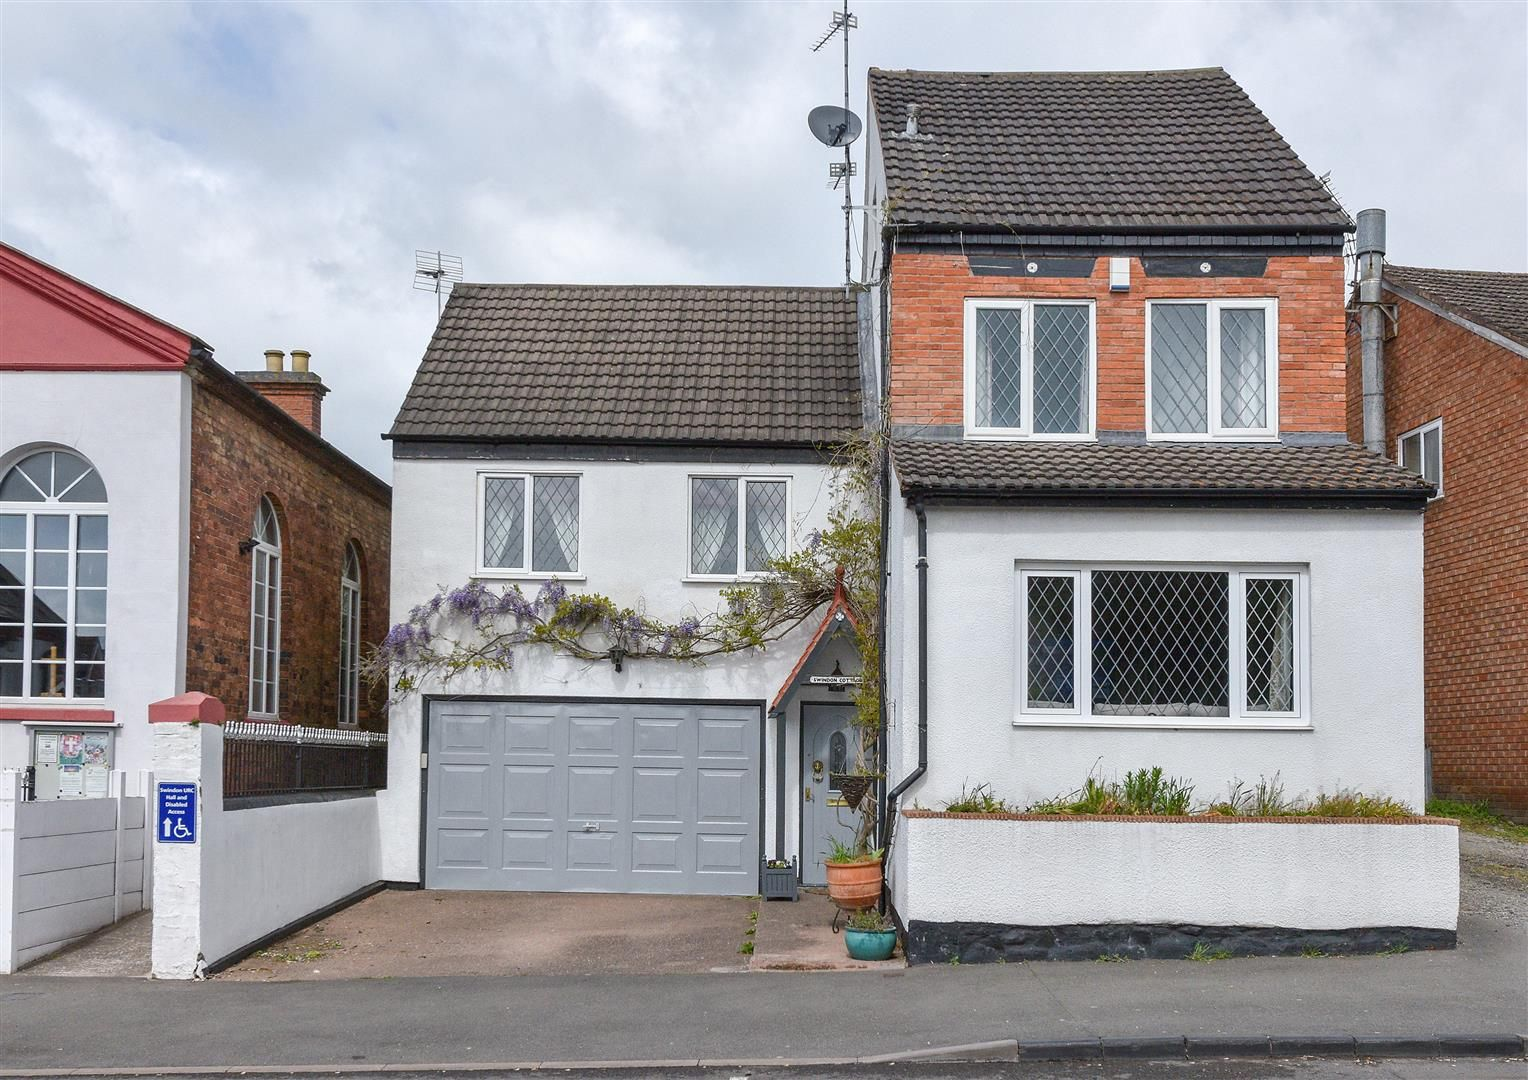 4 bed detached for sale in Swindon  - Property Image 1